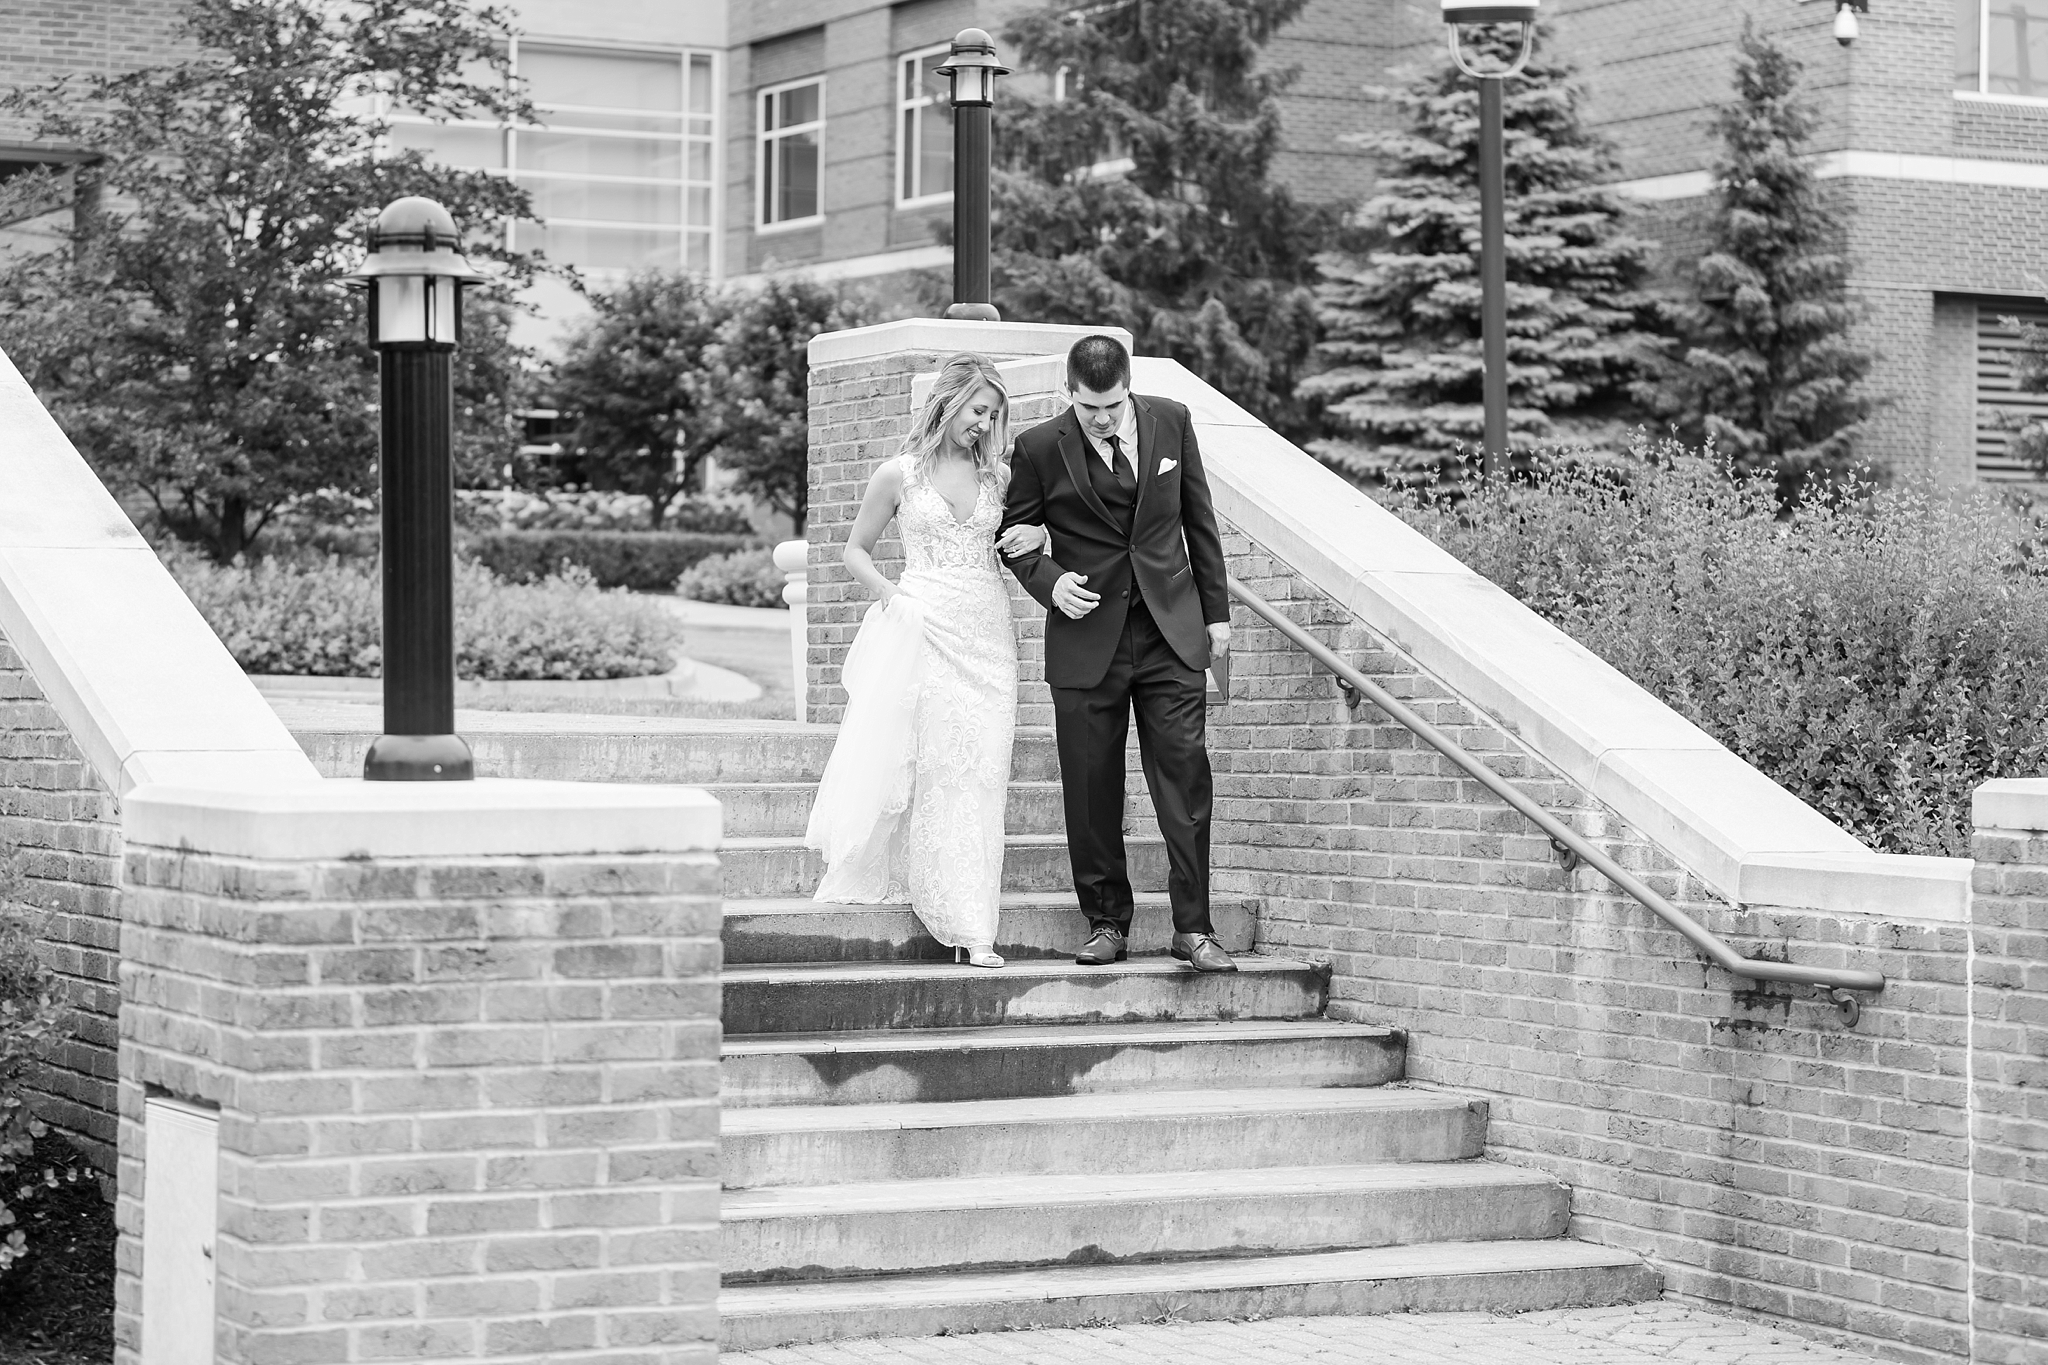 candid-romantic-wedding-photos-at-the-h-hotel-in-midland-michigan-by-courtney-carolyn-photography_0032.jpg